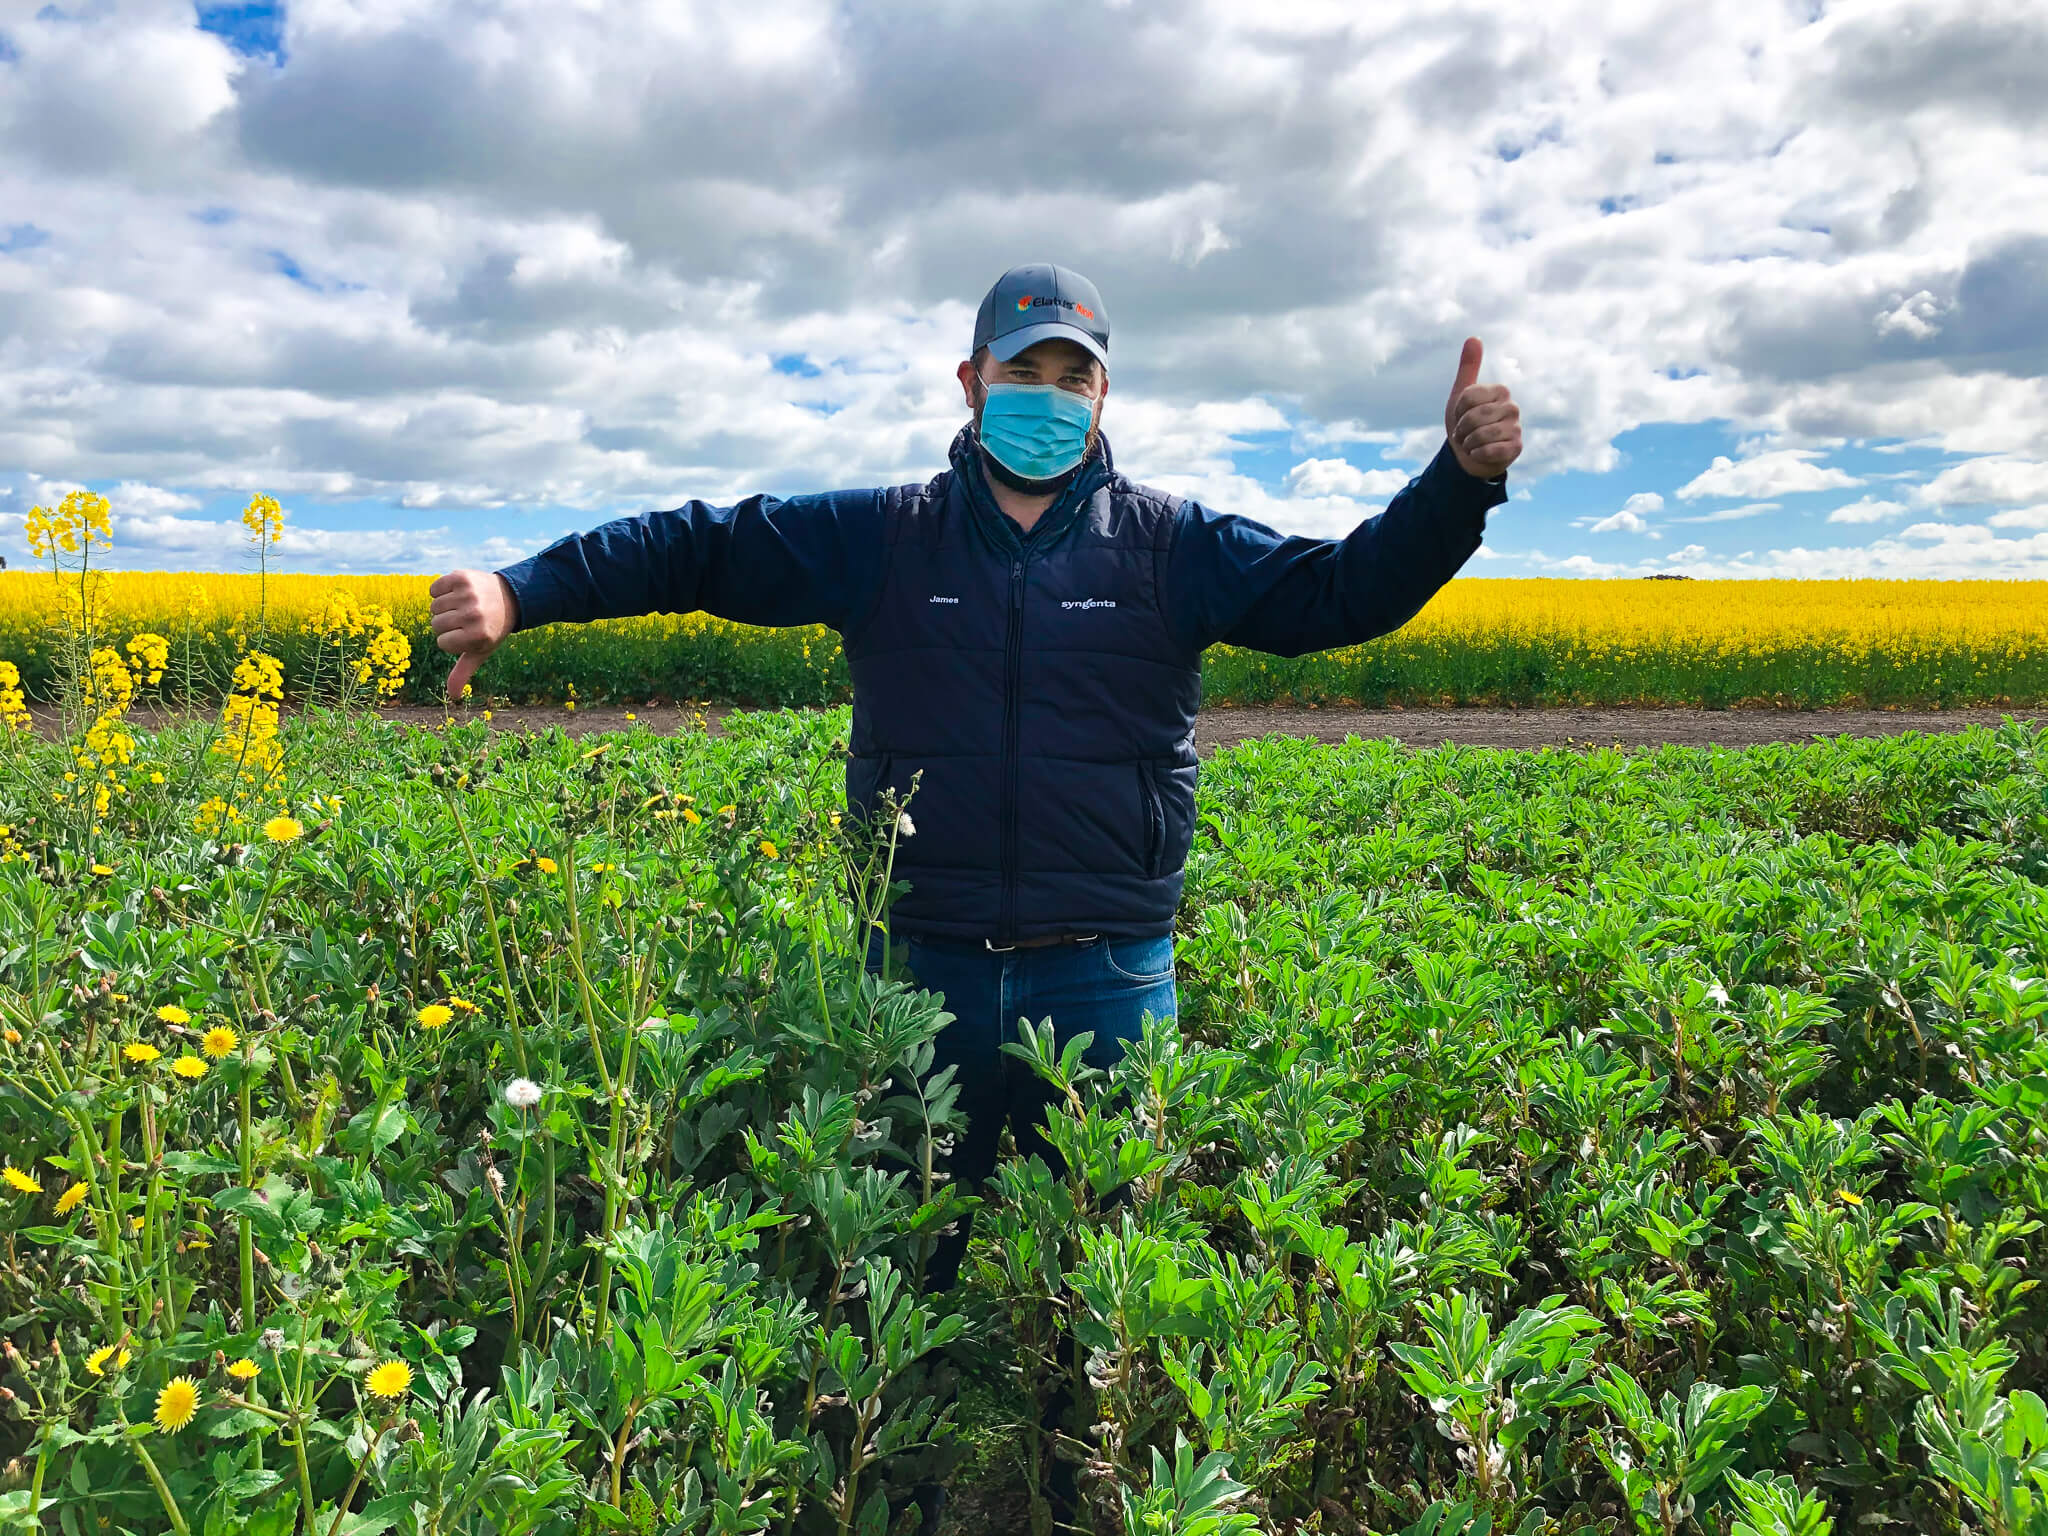 Lupins & other pulses to benefit from new addition of Reflex in weed control tool kit